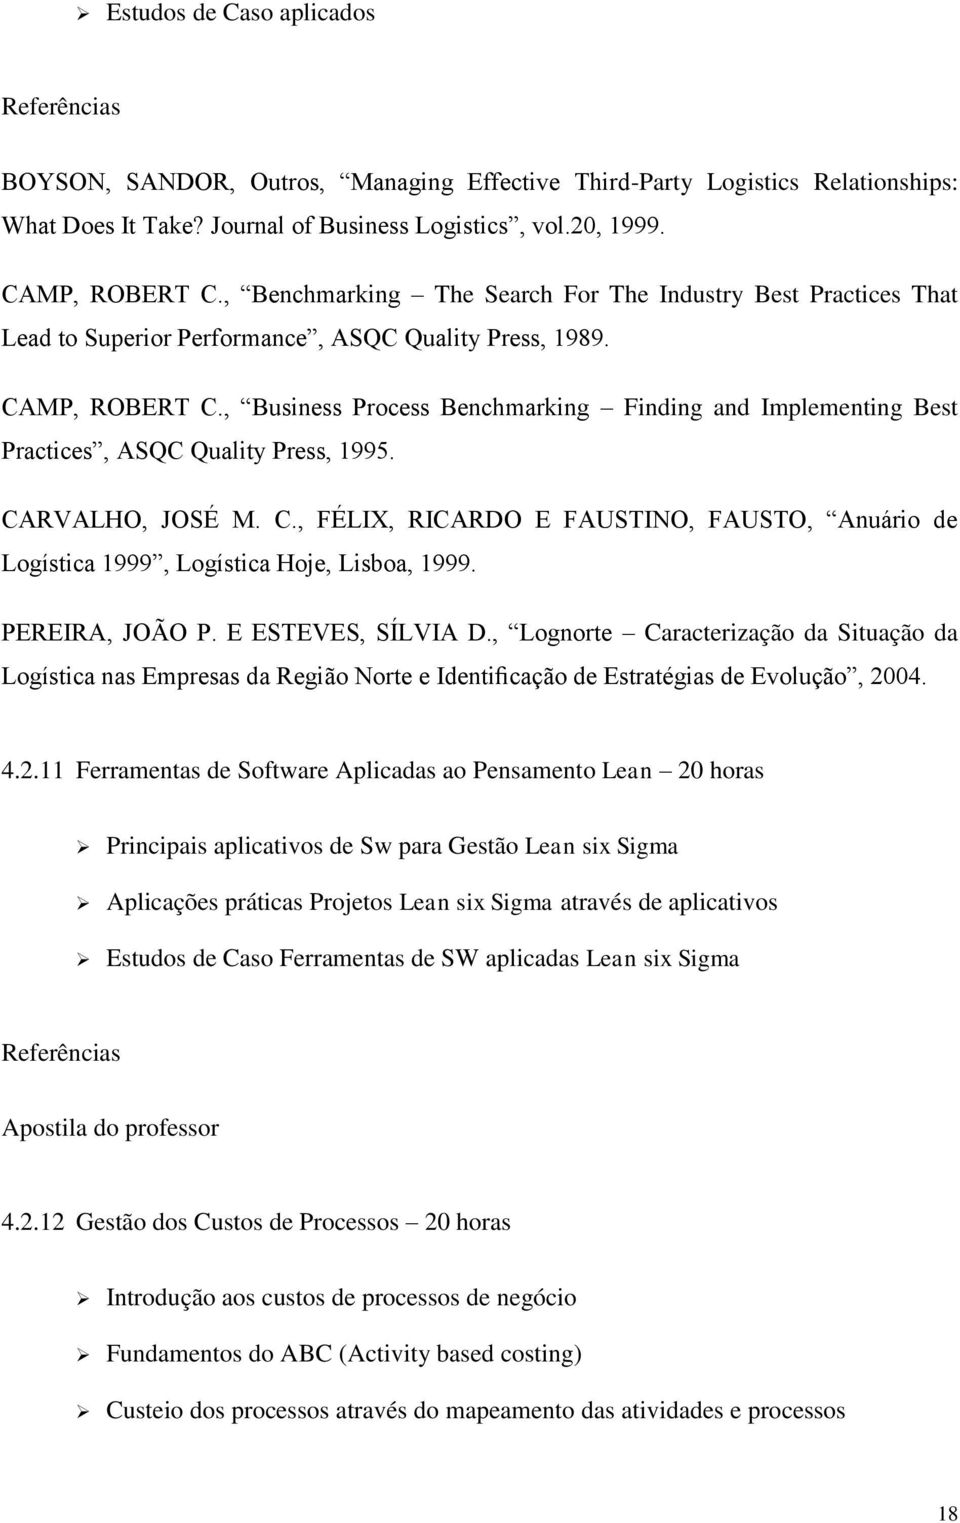 , Business Process Benchmarking Finding and Implementing Best Practices, ASQC Quality Press, 1995. CARVALHO, JOSÉ M. C., FÉLIX, RICARDO E FAUSTINO, FAUSTO, Anuário de Logística 1999, Logística Hoje, Lisboa, 1999.